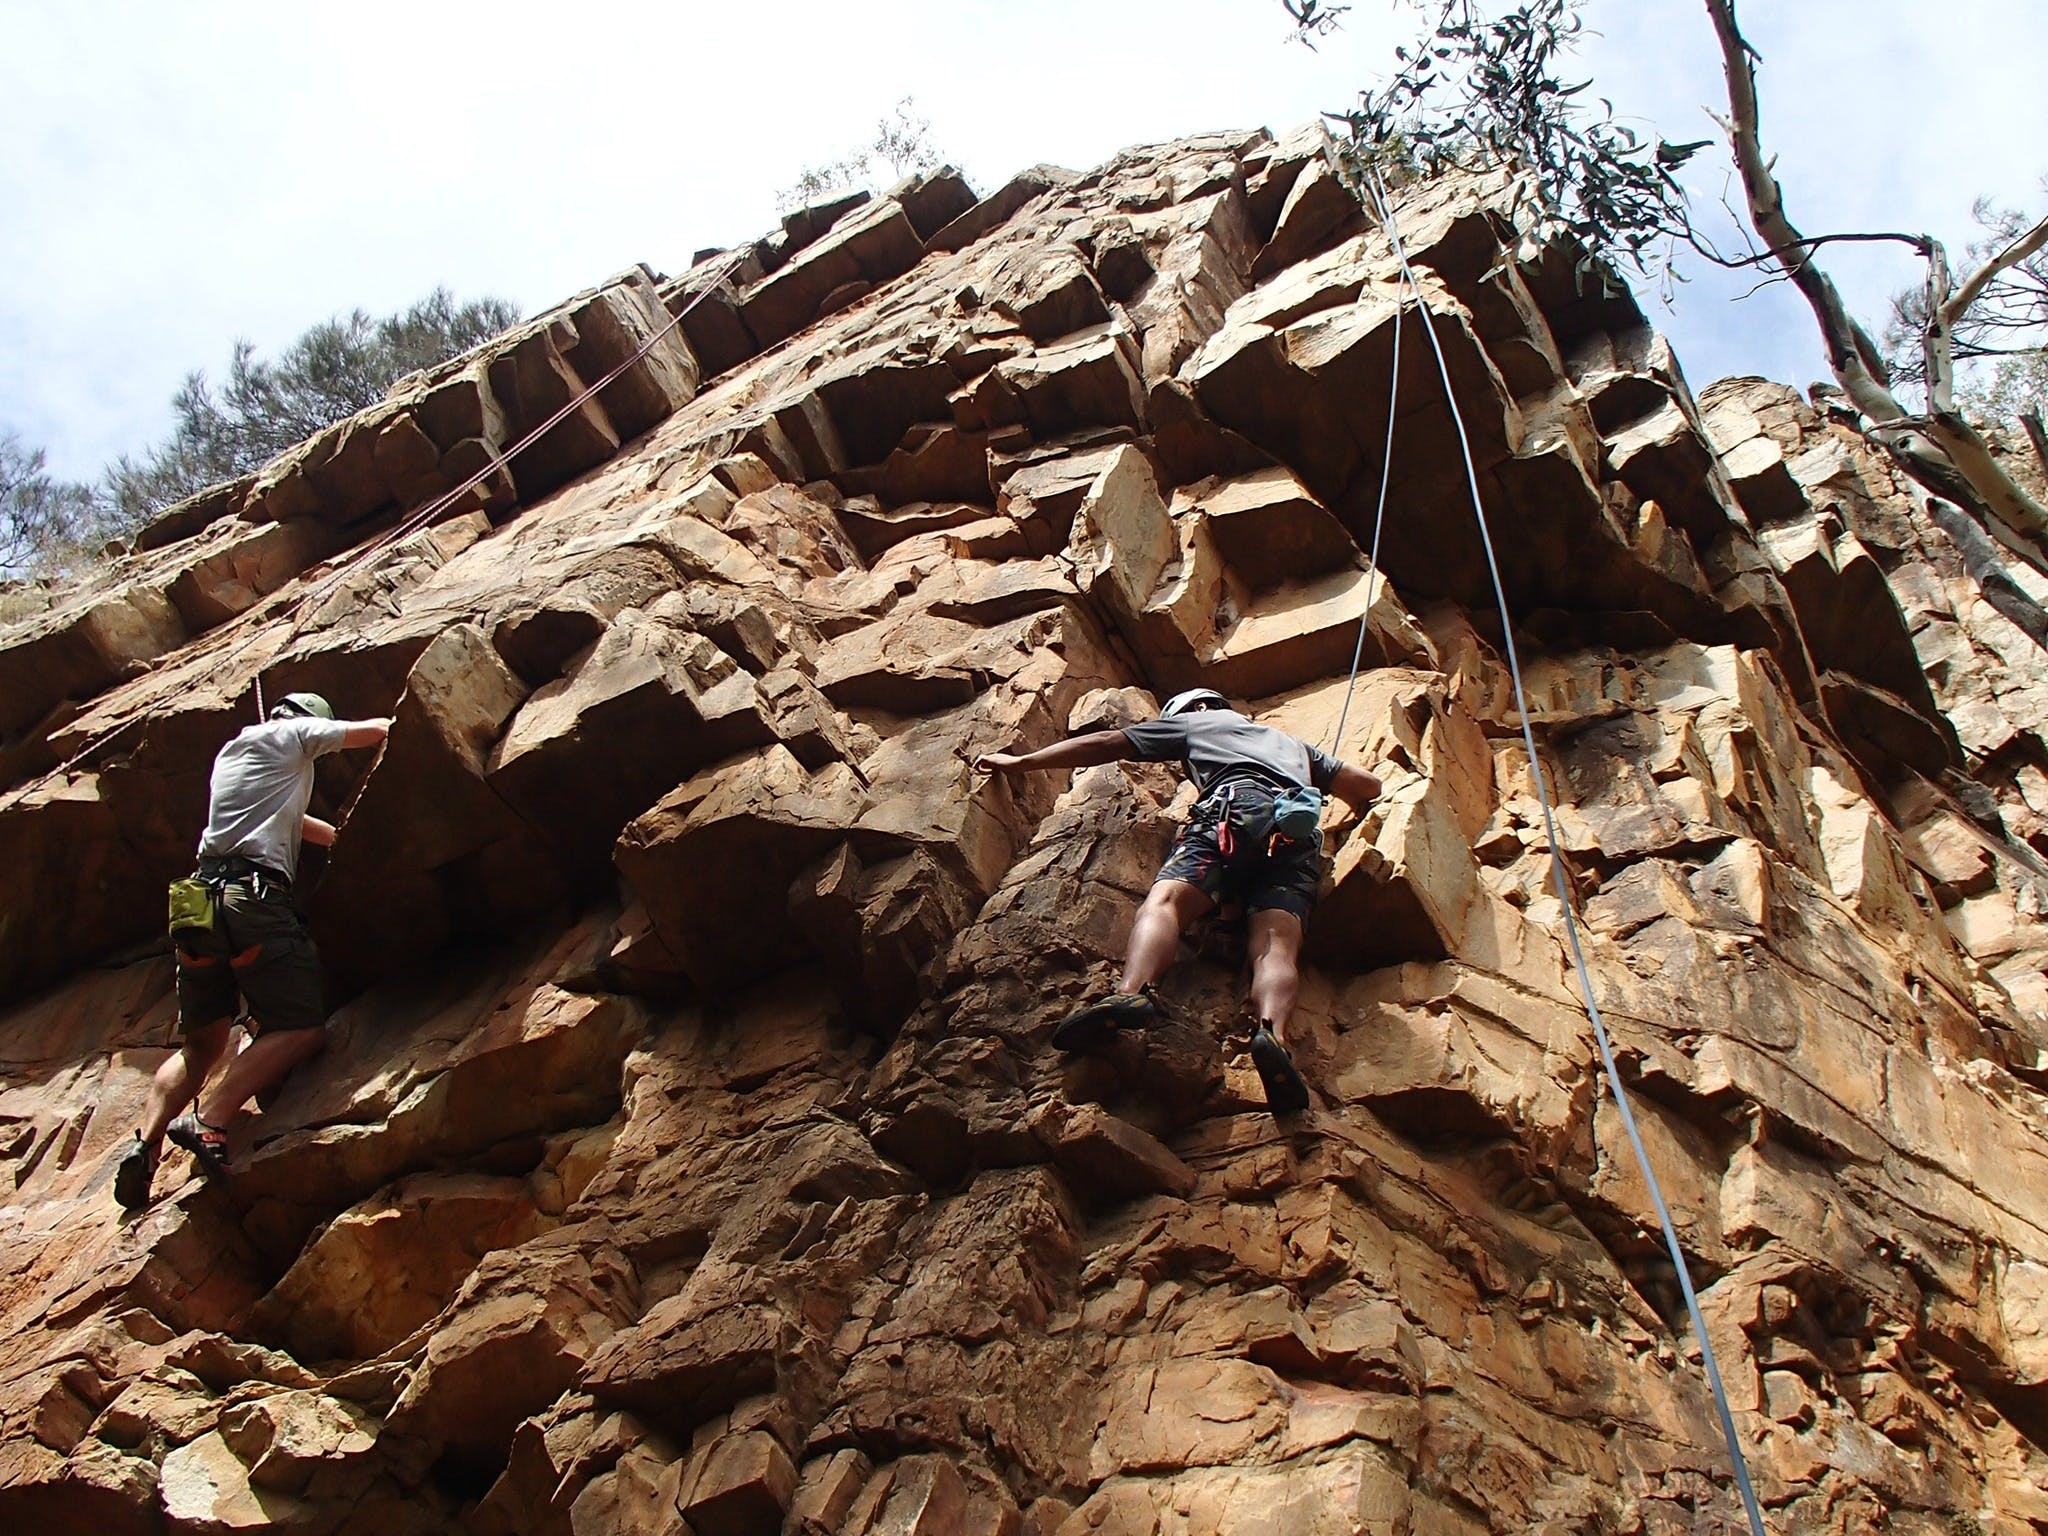 Rock Climbing in Morialta - Accommodation NT